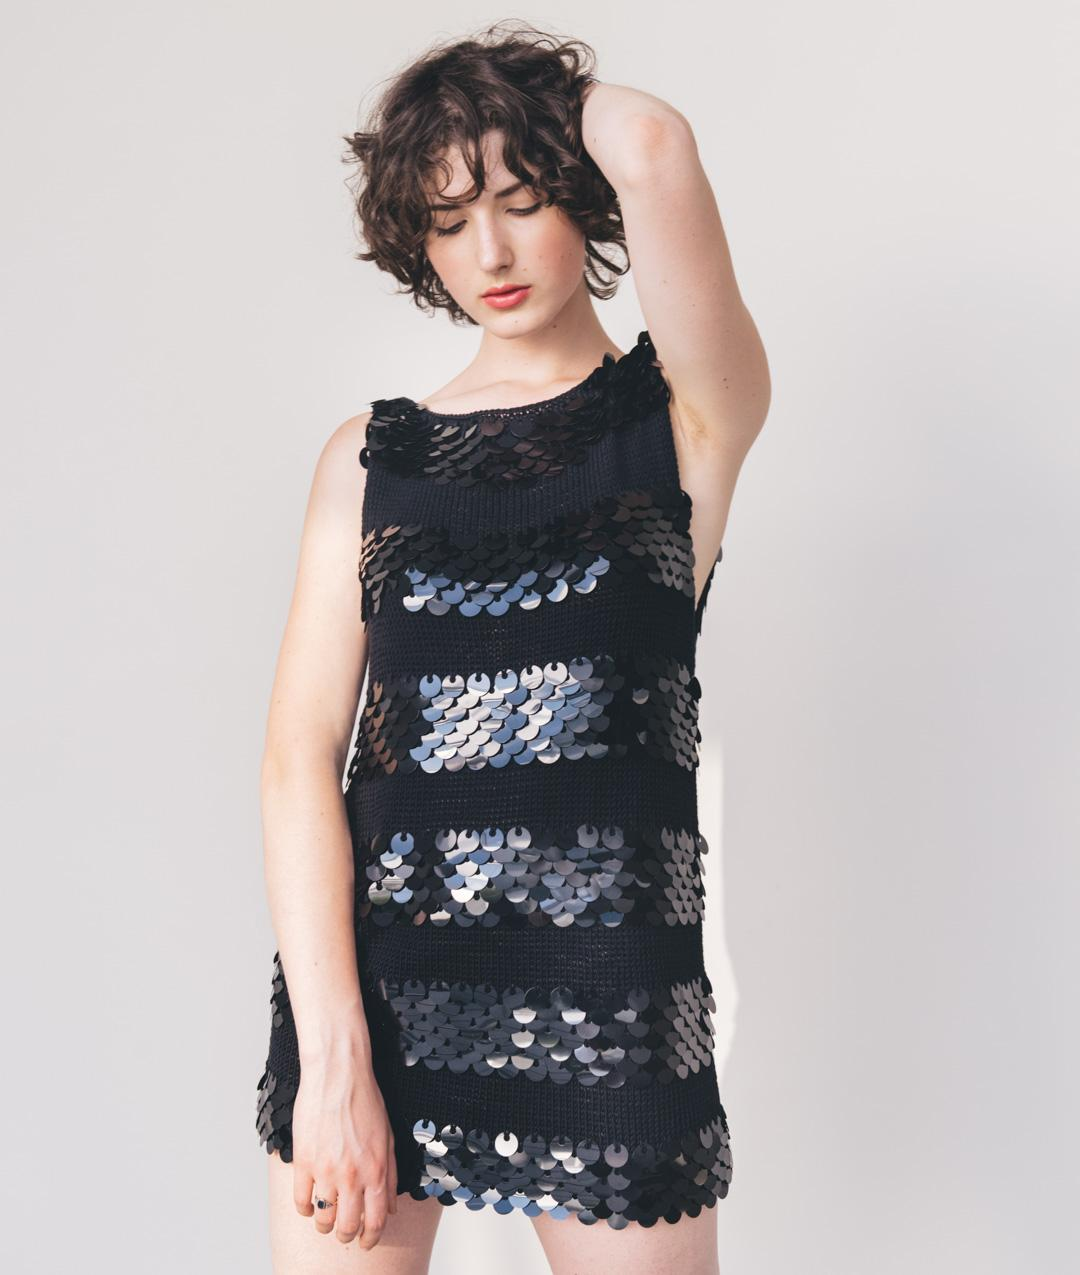 Black Label Collection - Dress - Pluto Dress - 1